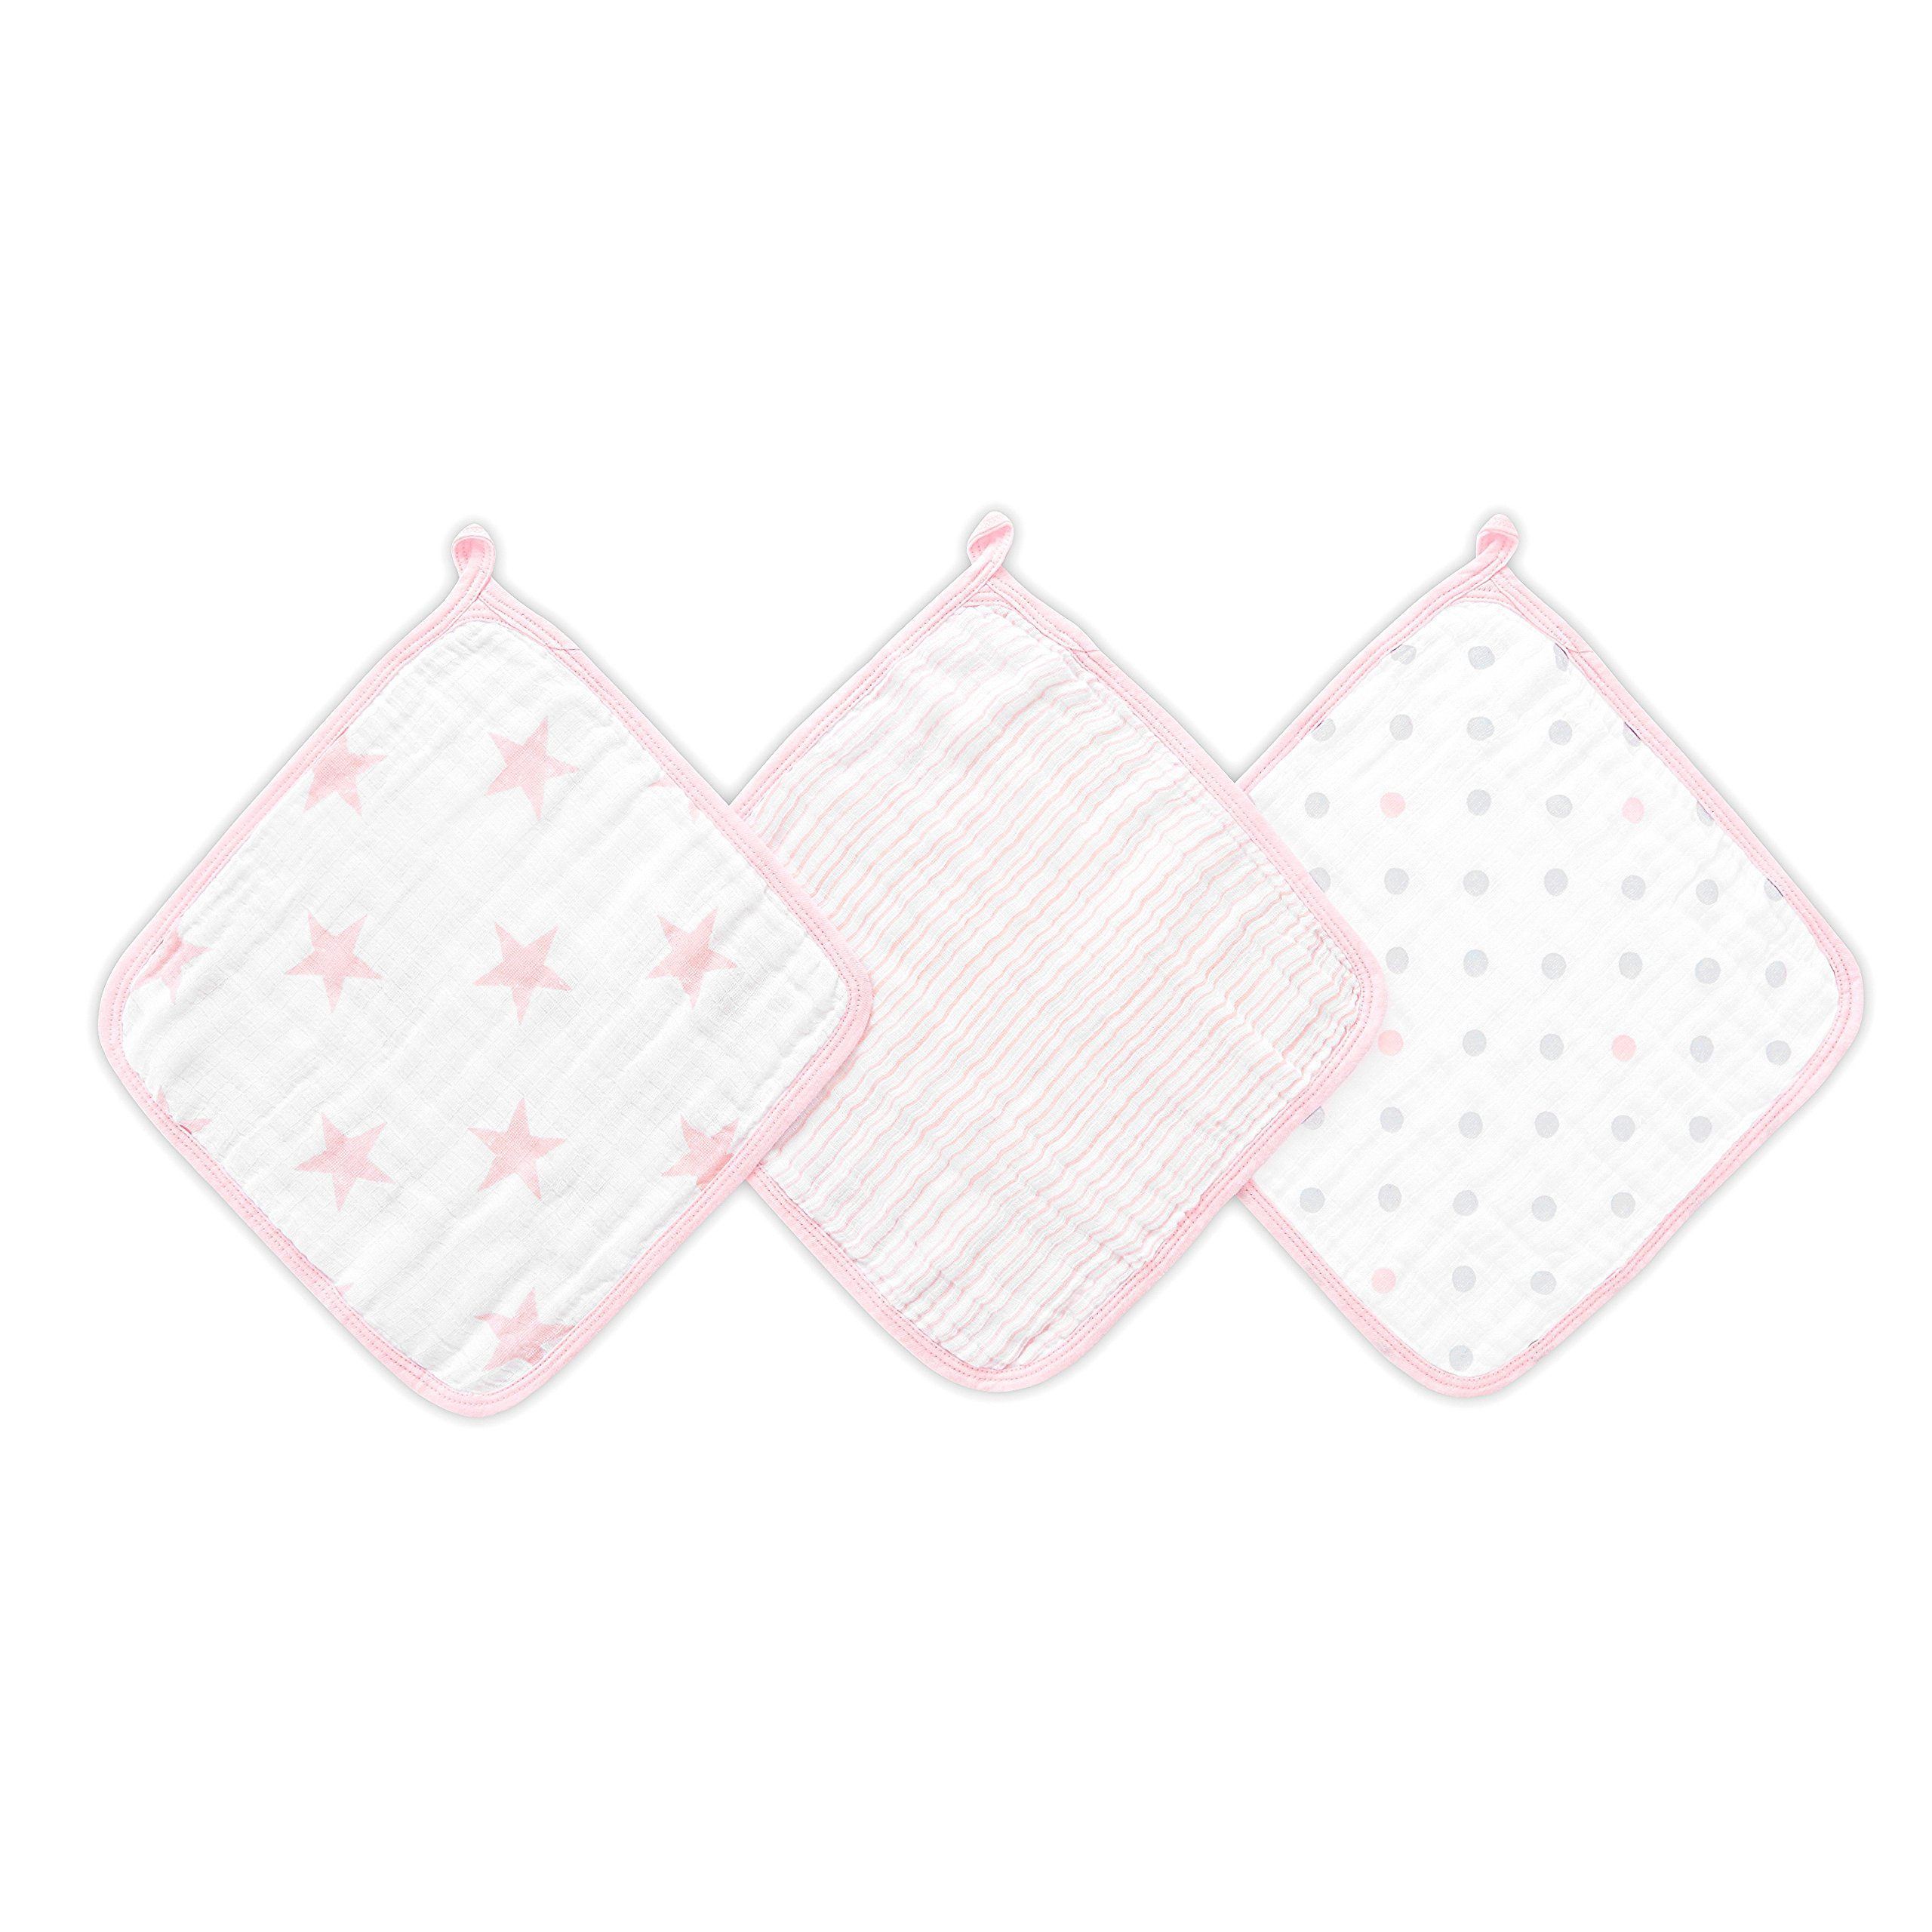 Aden by Aden + Anais washcloths 3 Pack, Doll